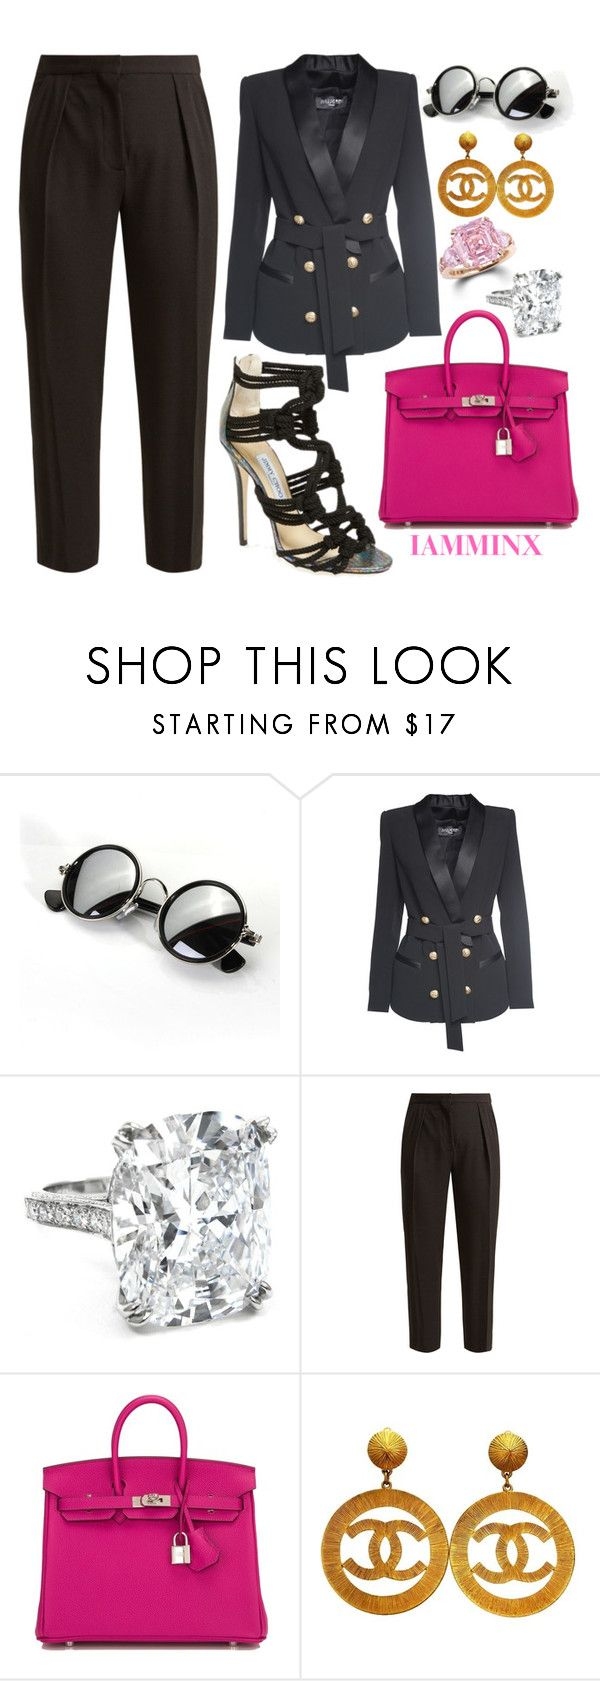 """""""Untitled #378"""" by iamminx ❤ liked on Polyvore featuring Graff, Balmain, Jimmy Choo, See by Chloé and Hermès"""